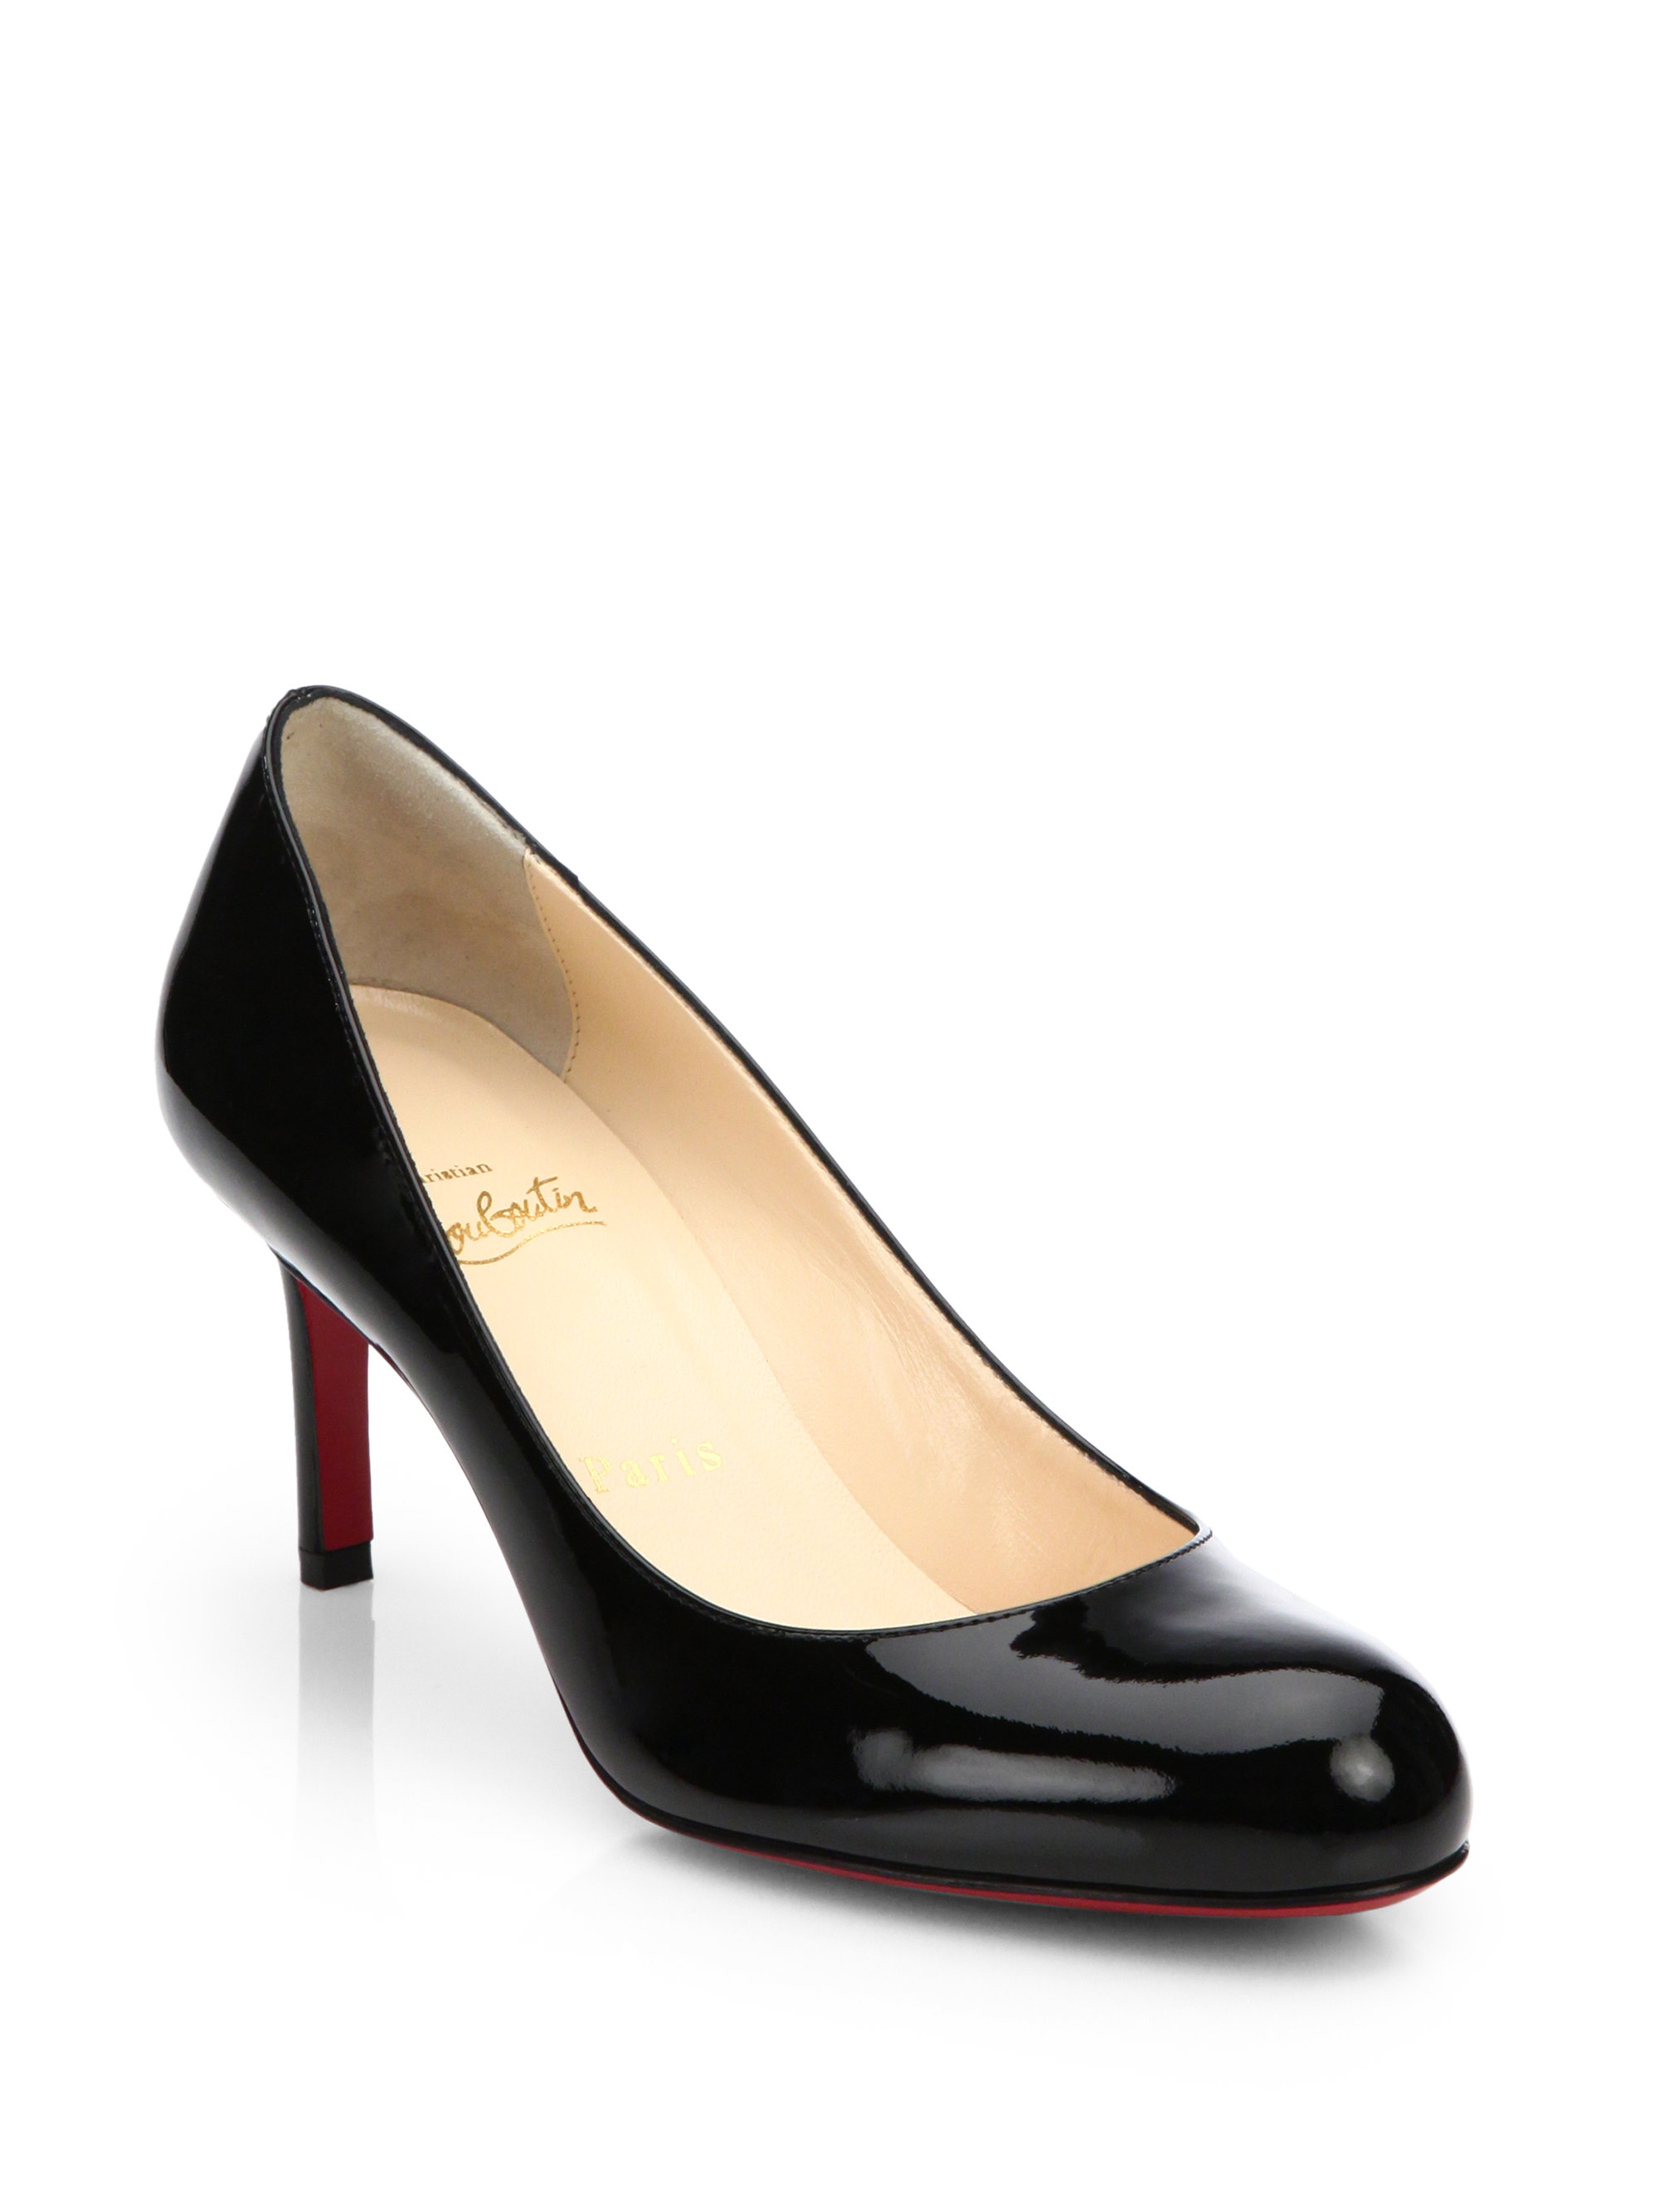 christian louboutin men's - Christian louboutin Simple Patent Leather Pumps in Black | Lyst